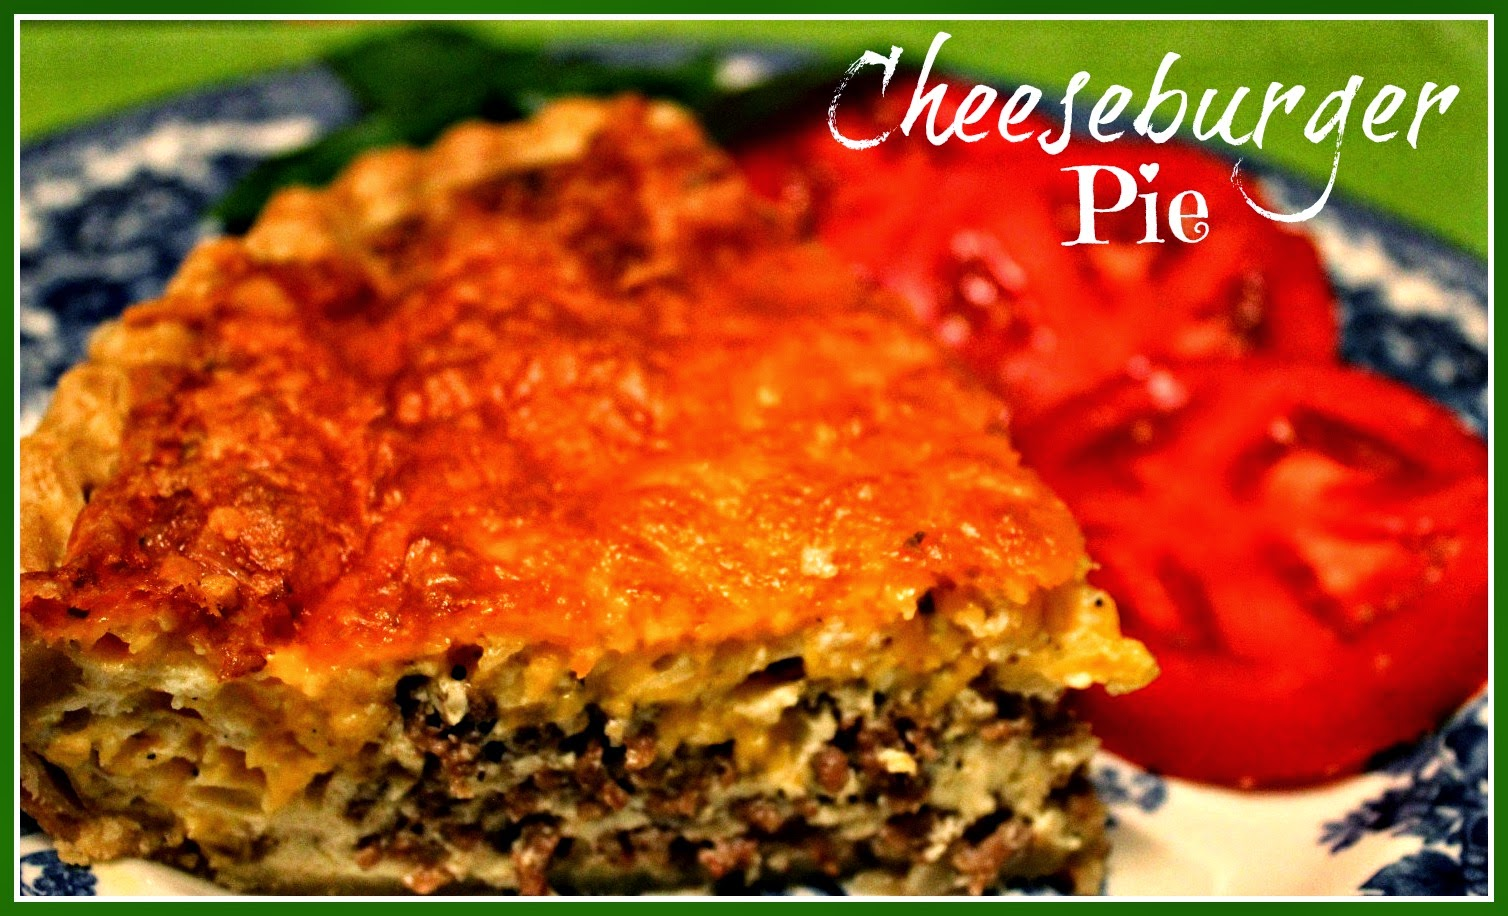 Cheeseburger Pie!